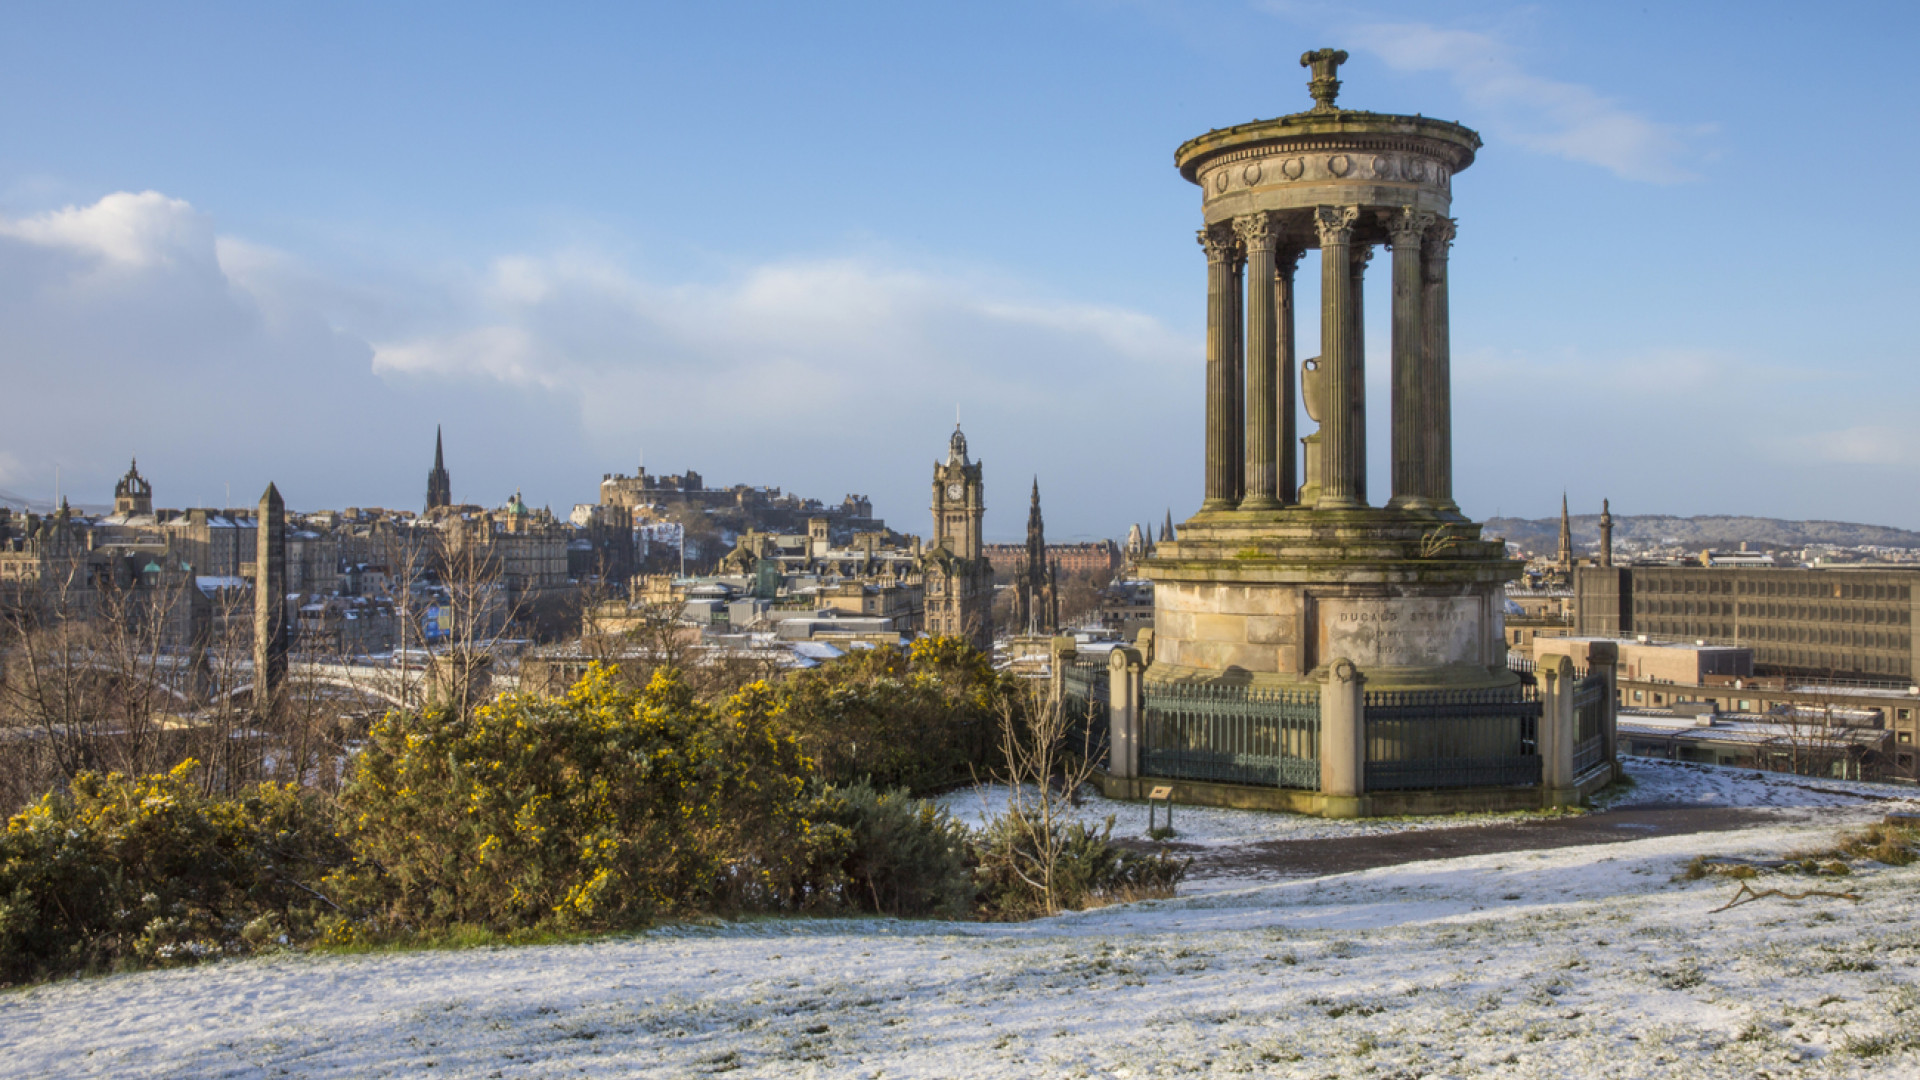 Edinburgh's skyline, taking in view of the Castle, Princes street & the Dugald Stewart Monument in the foreground